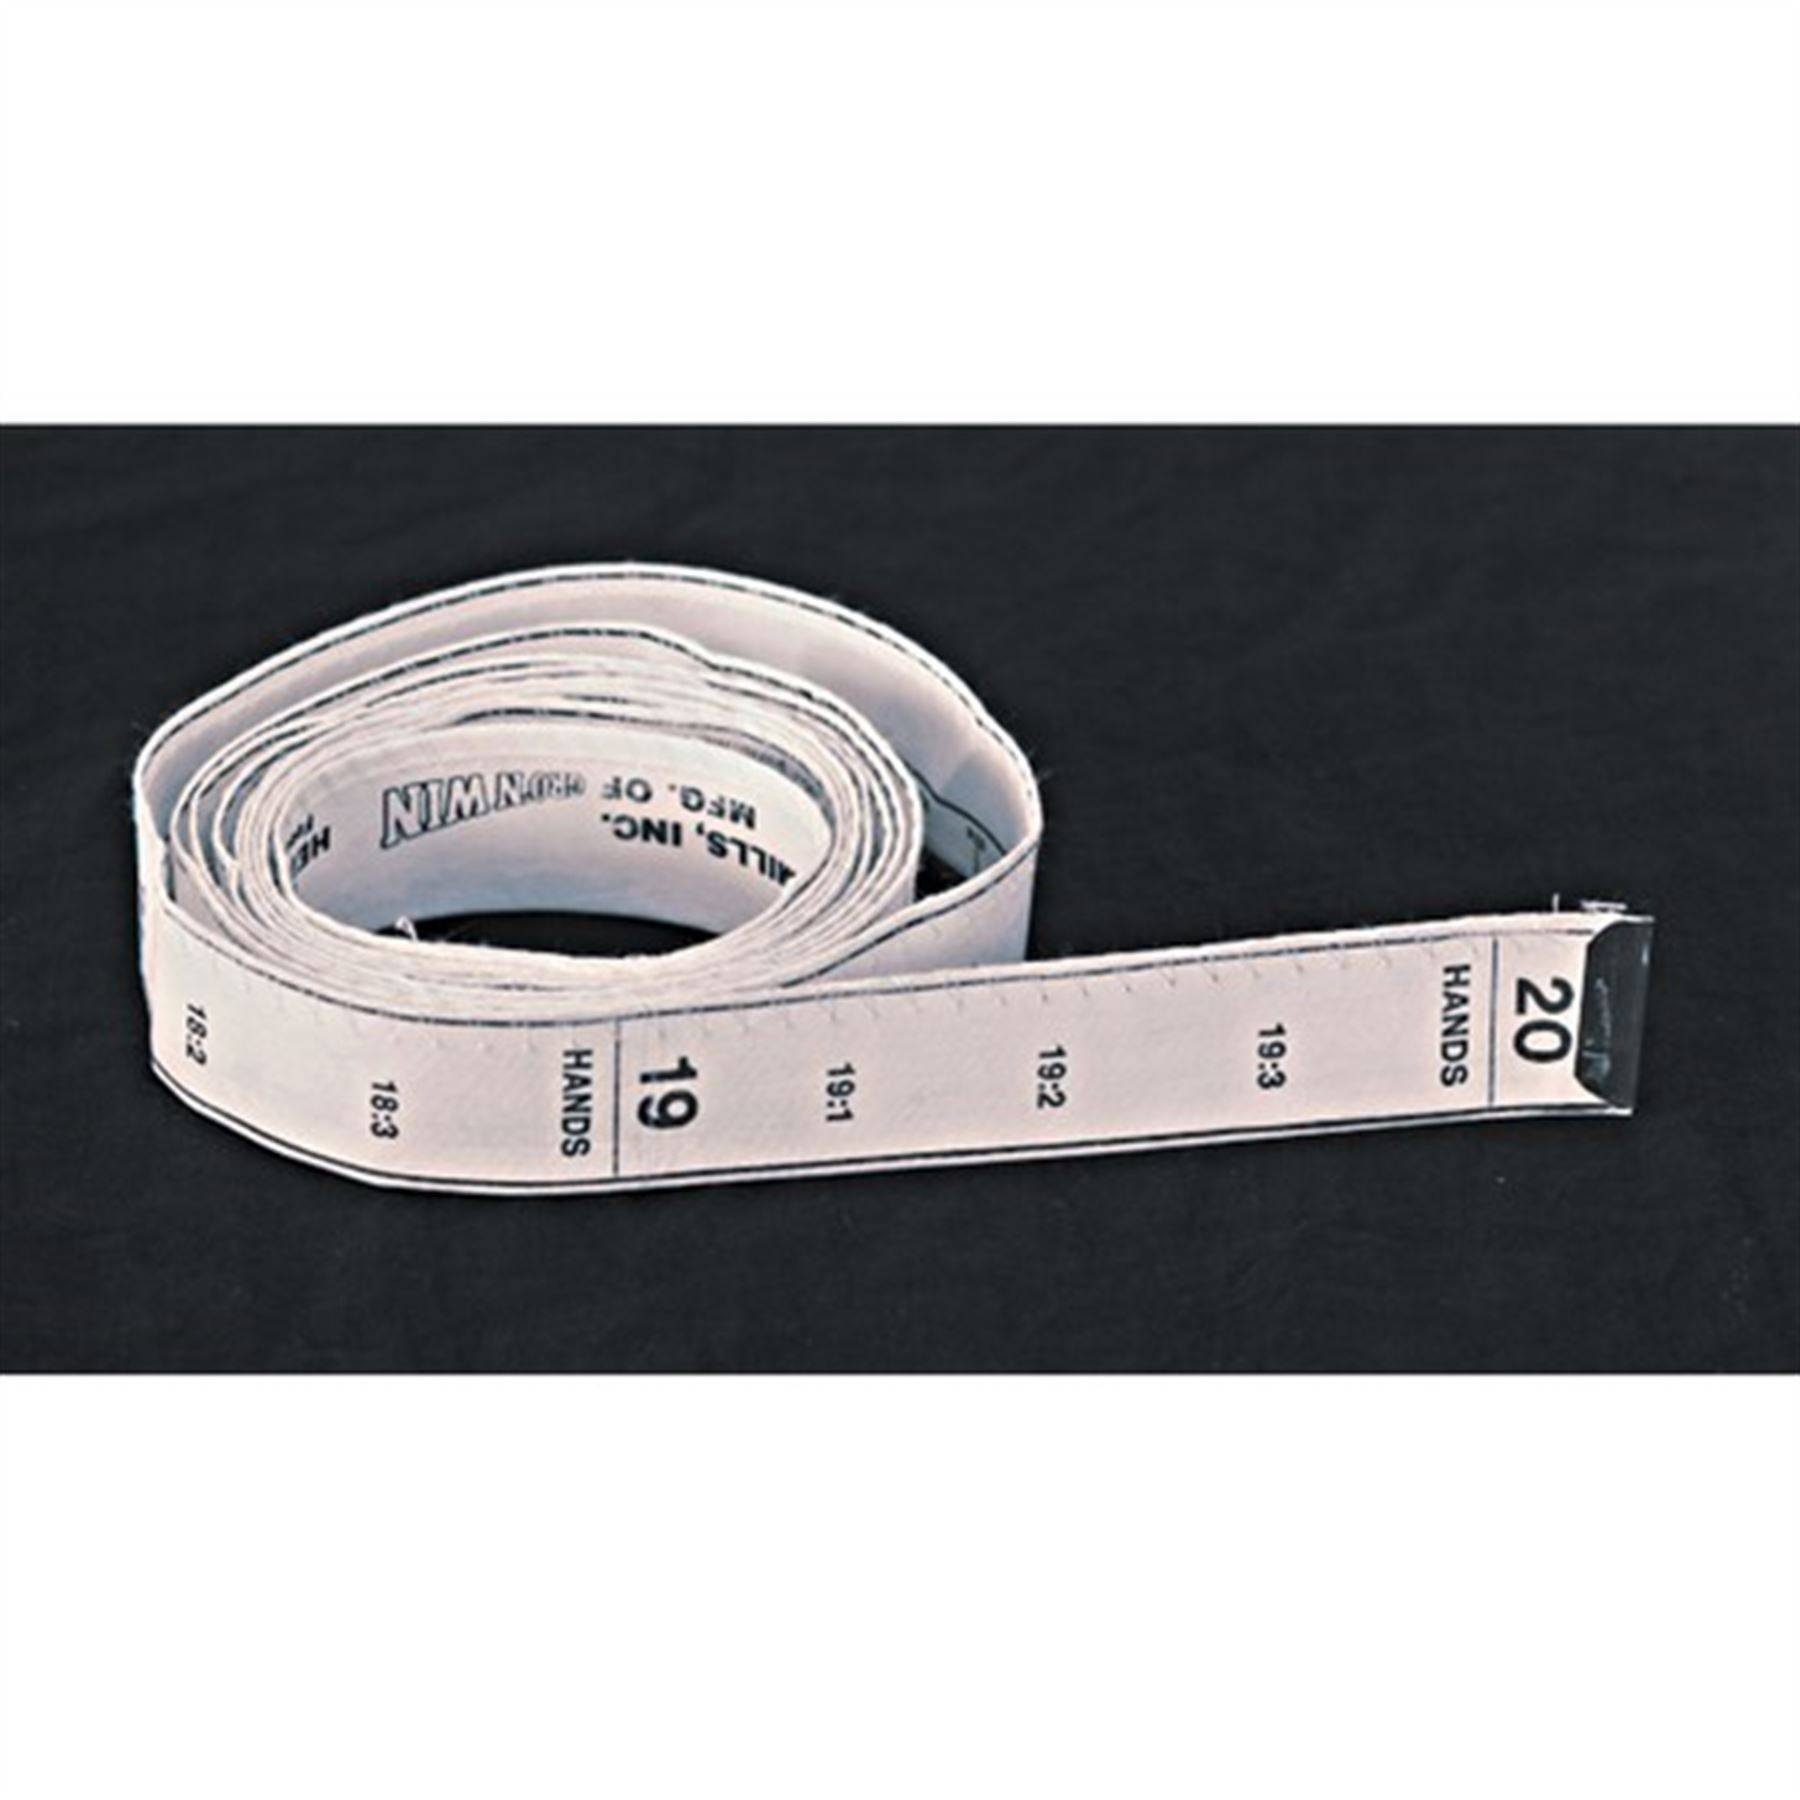 Horse Height & Weight Measurement Tape